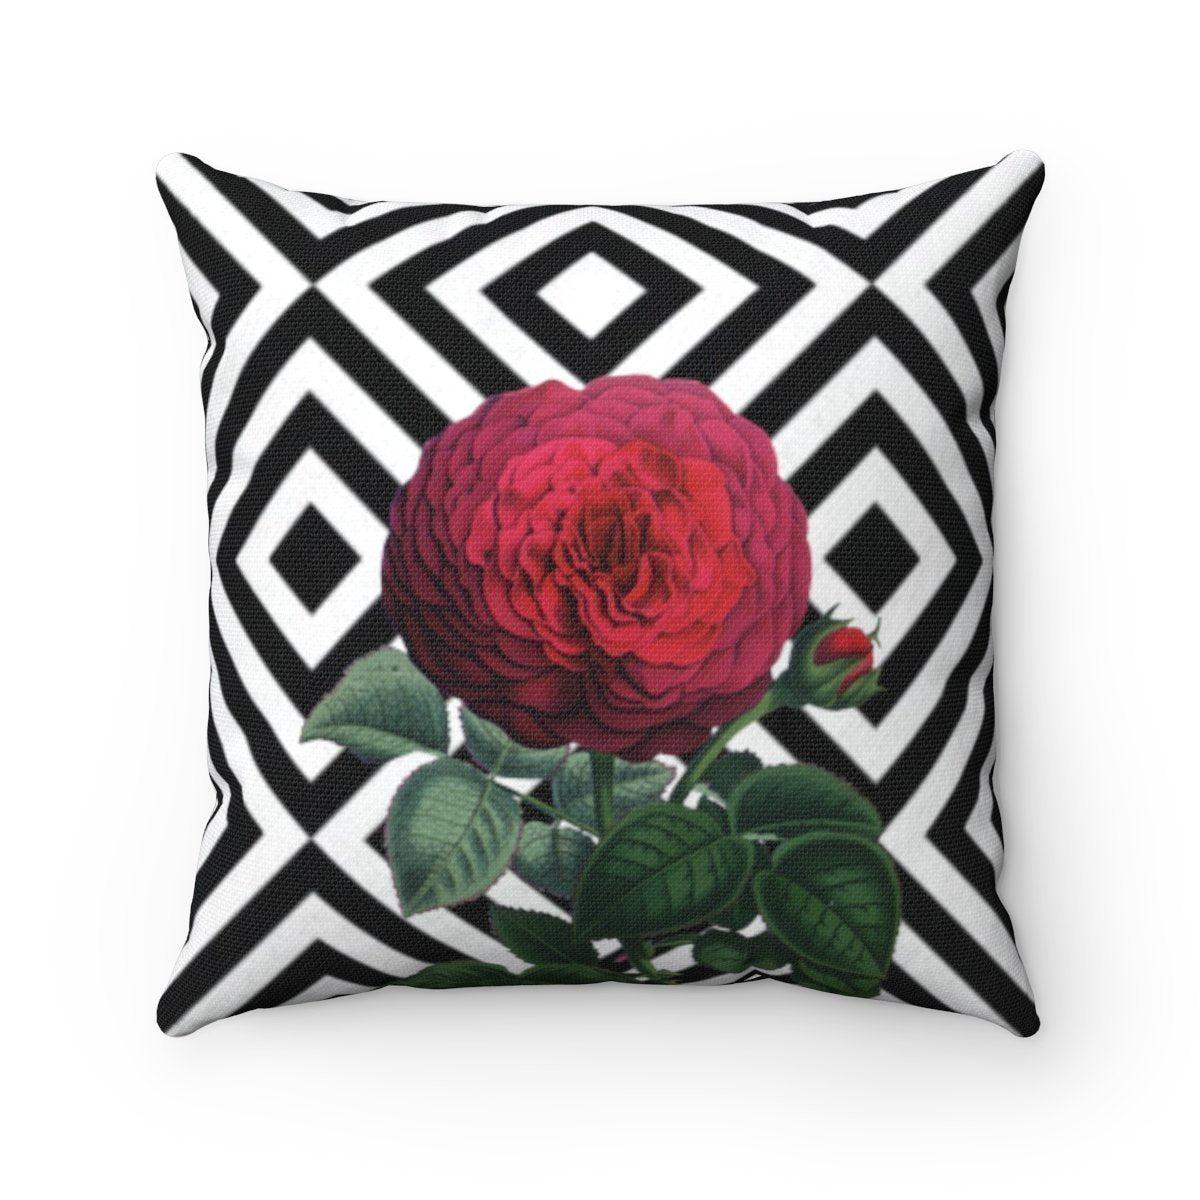 Luxury camellia | Floral abstract decorative cushion cover-Home Decor - Decorative Accents - Pillows & Throws - Decorative Pillows-Maison d'Elite-14x14-Très Elite